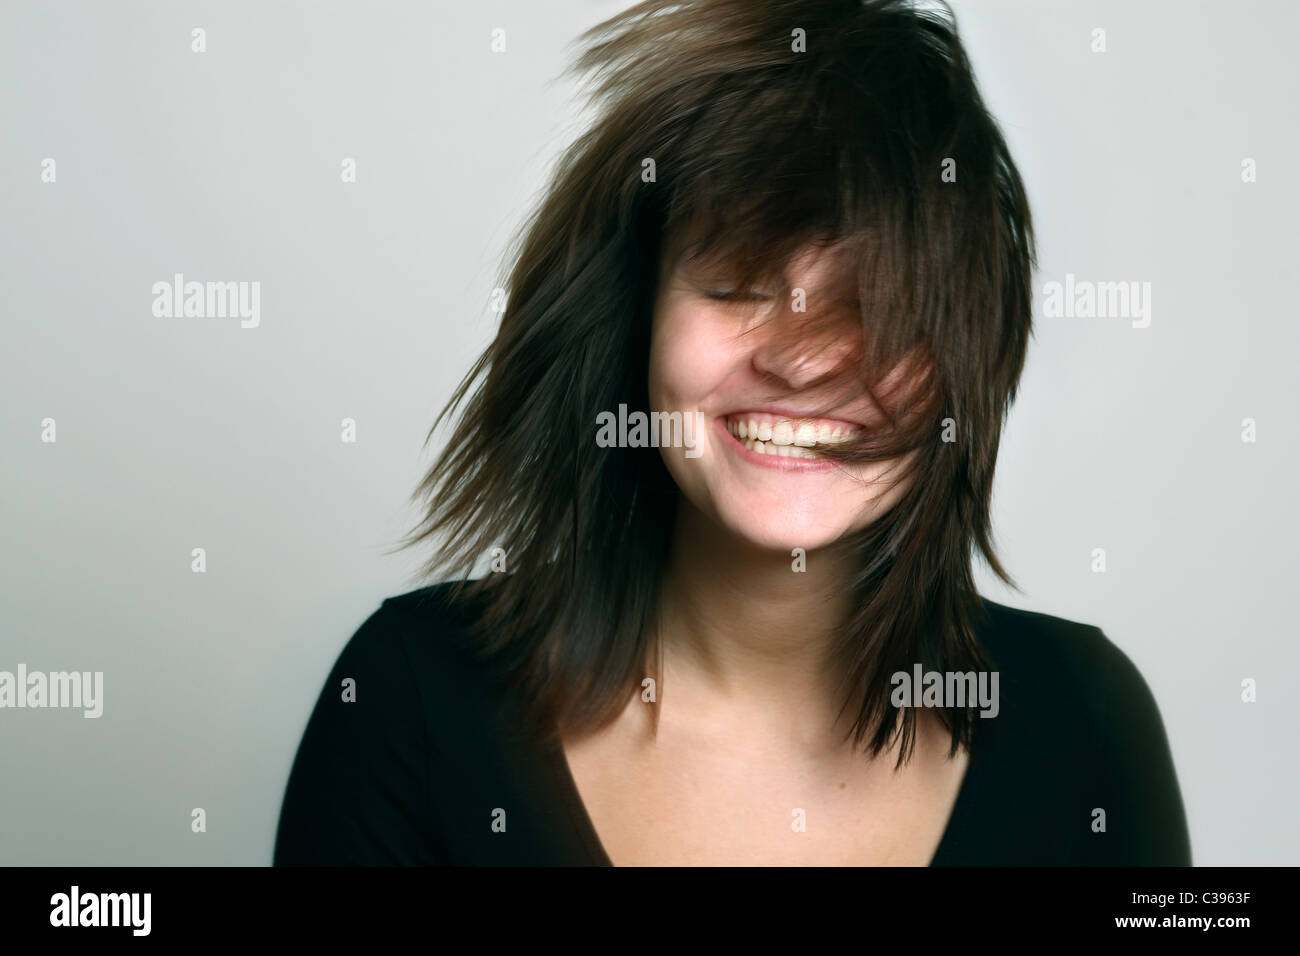 A woman laughing cheerfully - Stock Image